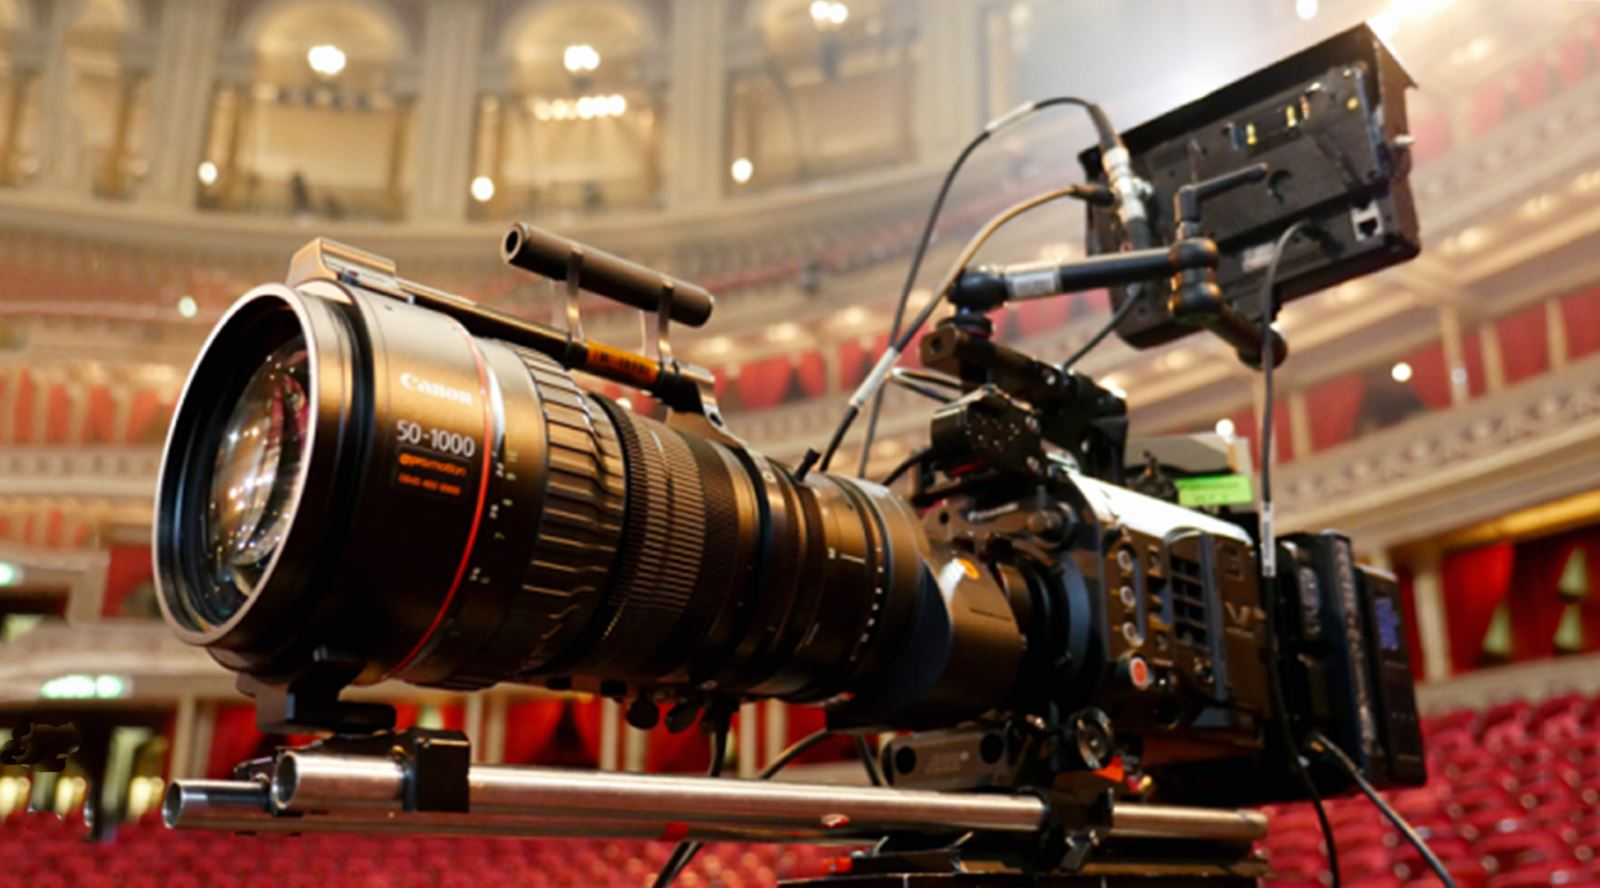 The Guild of Television Camera Professionals : Panasonic VariCam LT